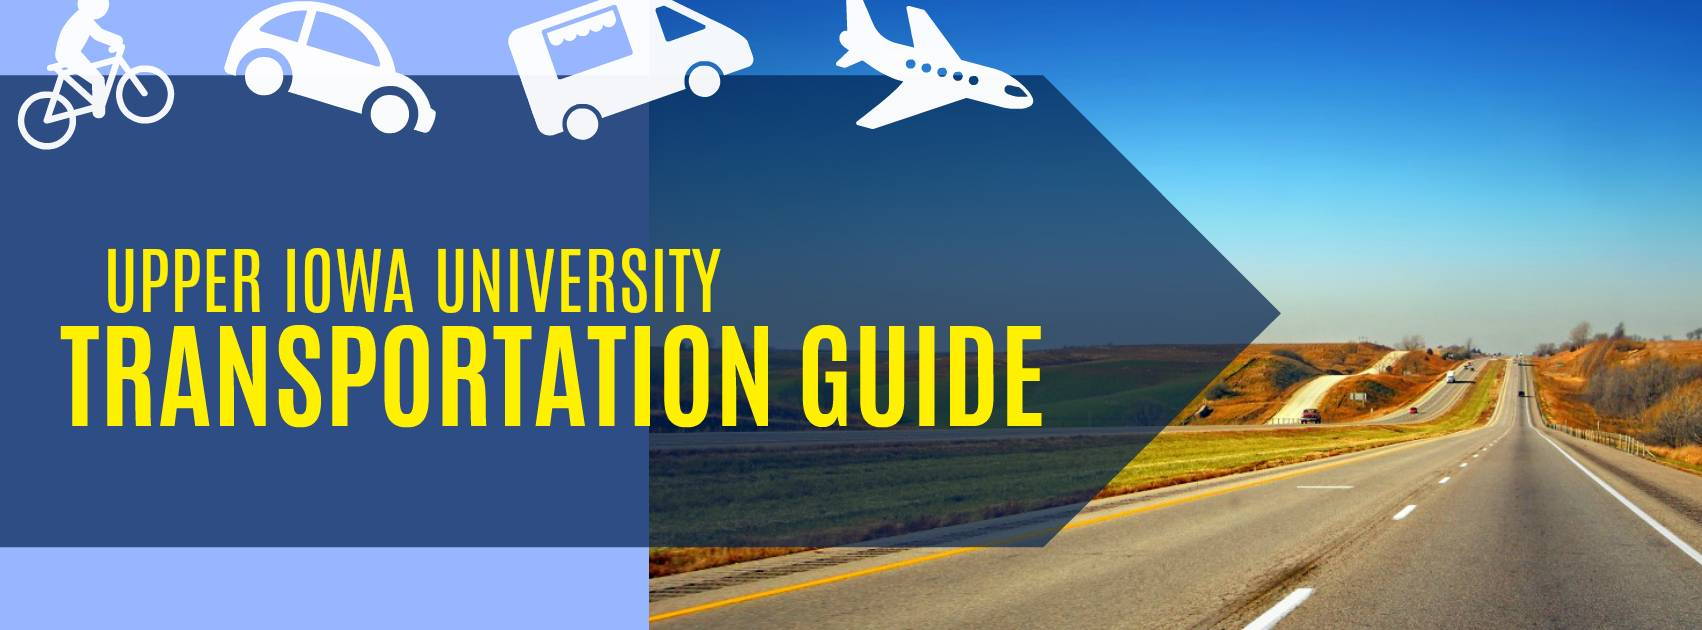 A graphic displaying the text Upper Iowa University Transportation guide, icons of various vehicles and a picture of a freeway.